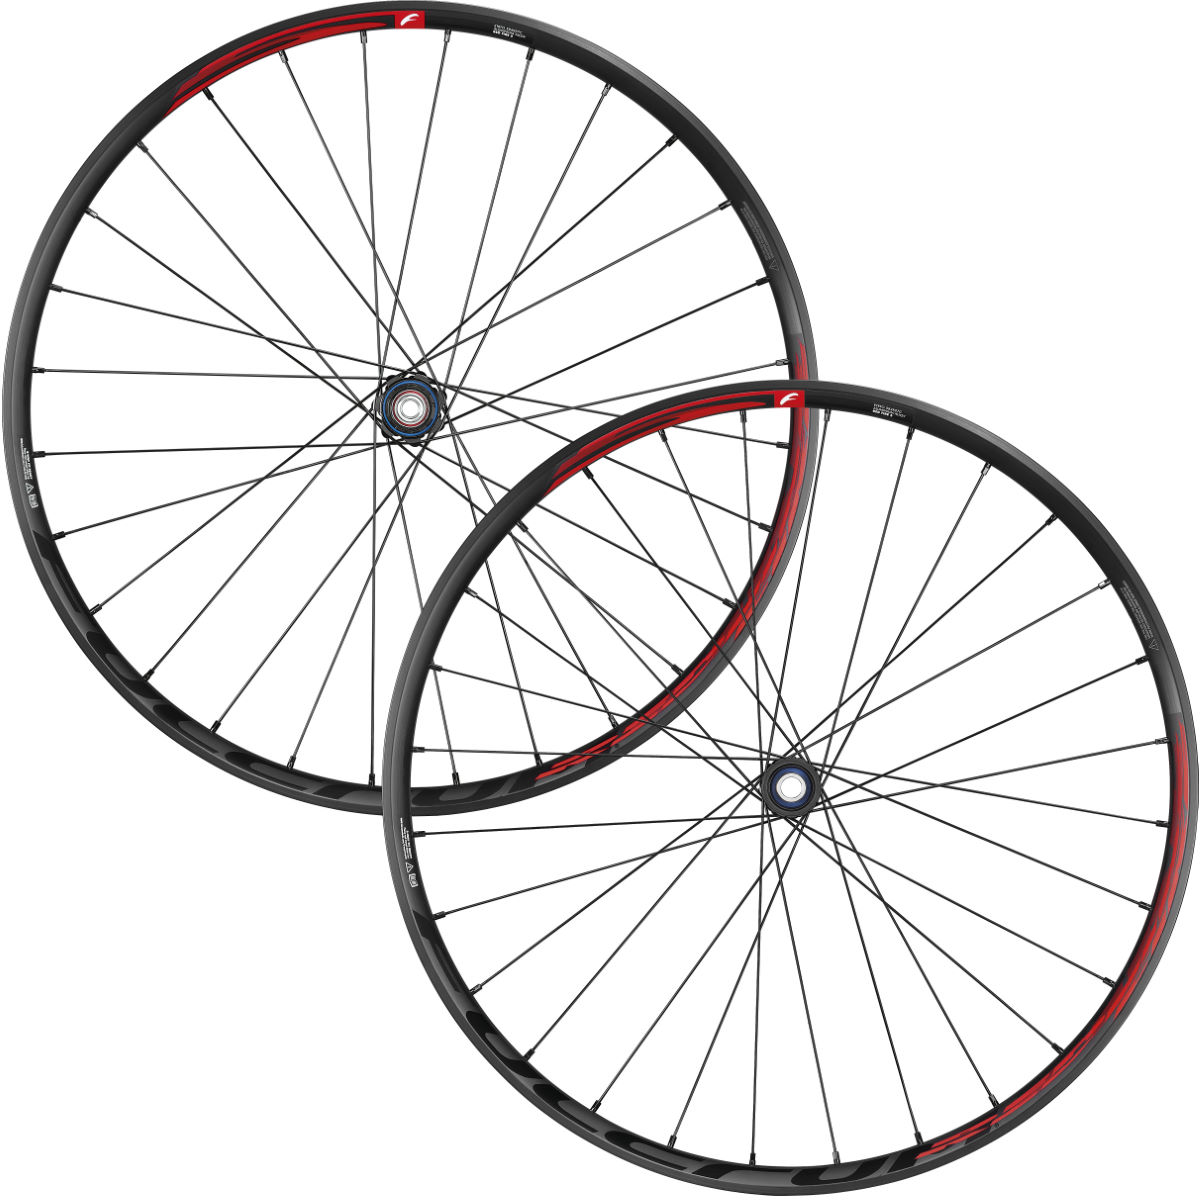 Fulcrum RED FIRE 5 MTB Wheelset - Ruedas de competición